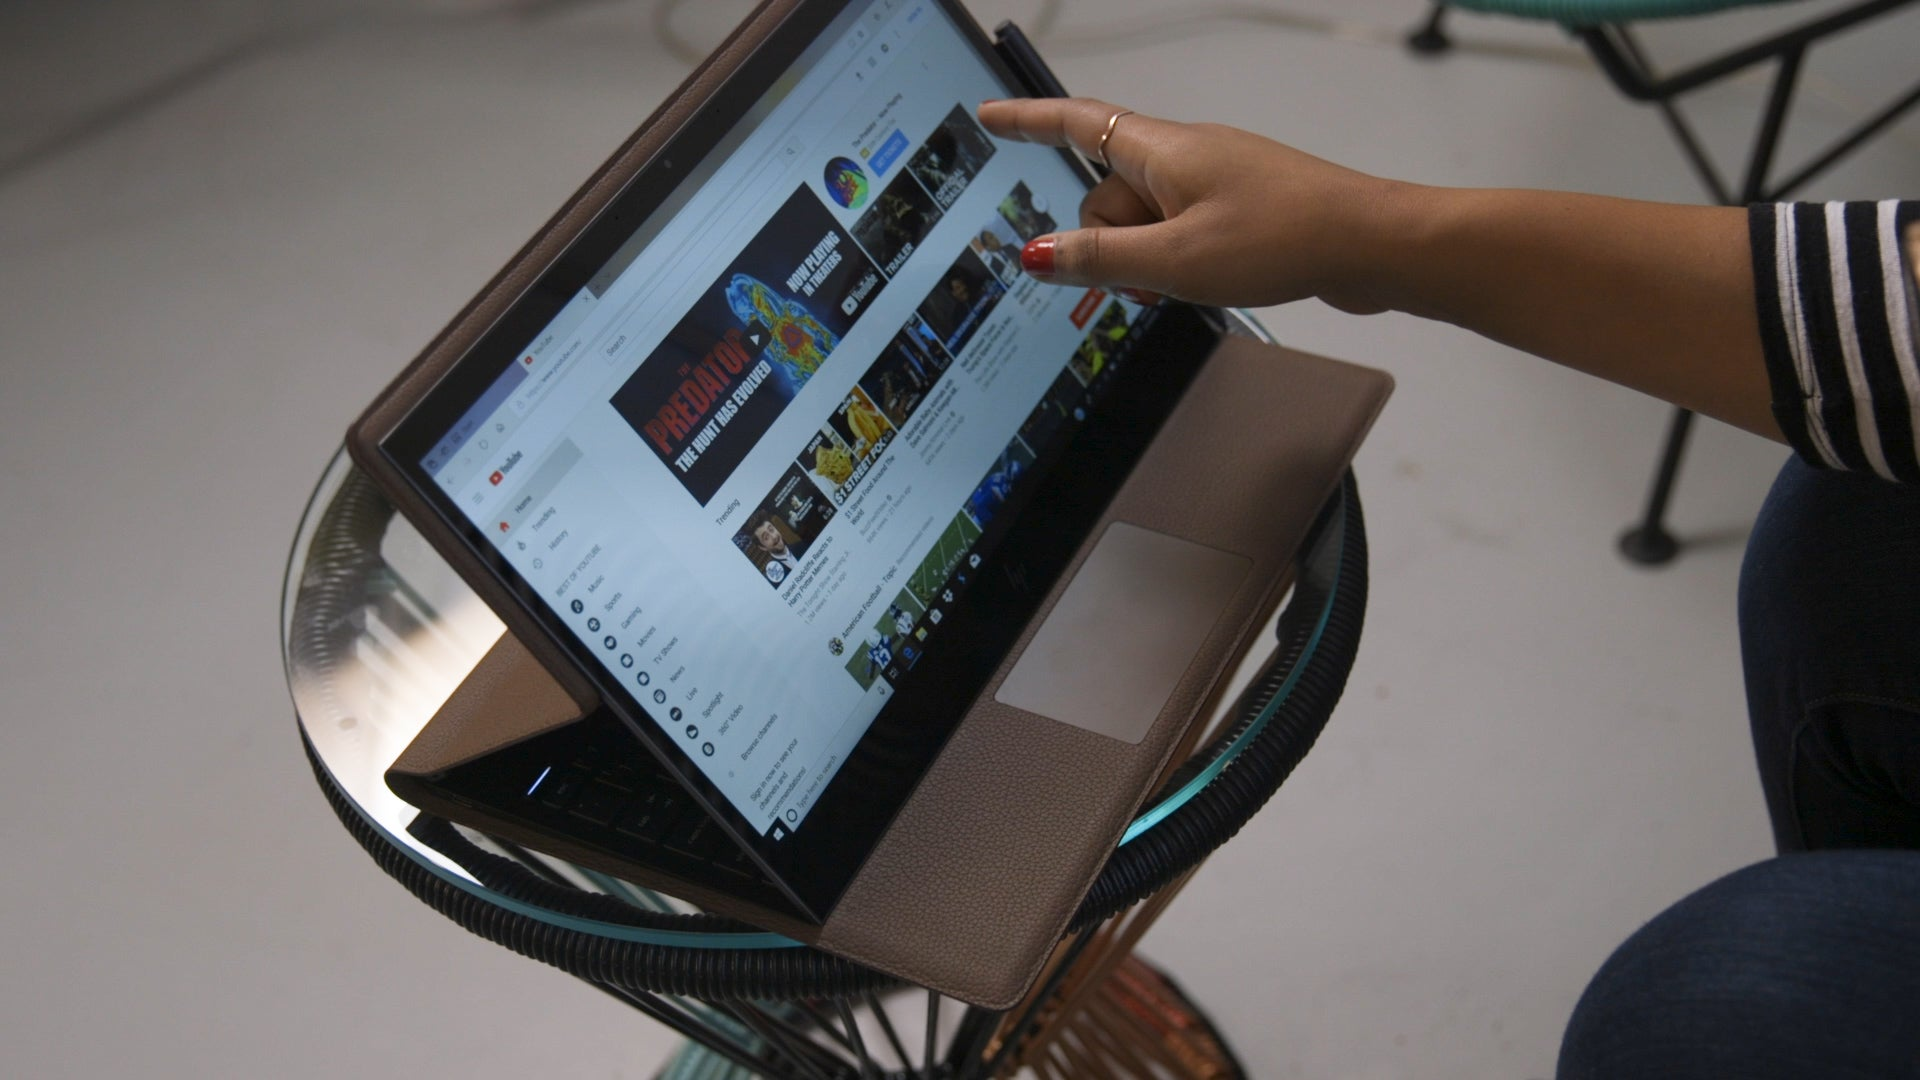 Our First Look At The HP Spectre Folio